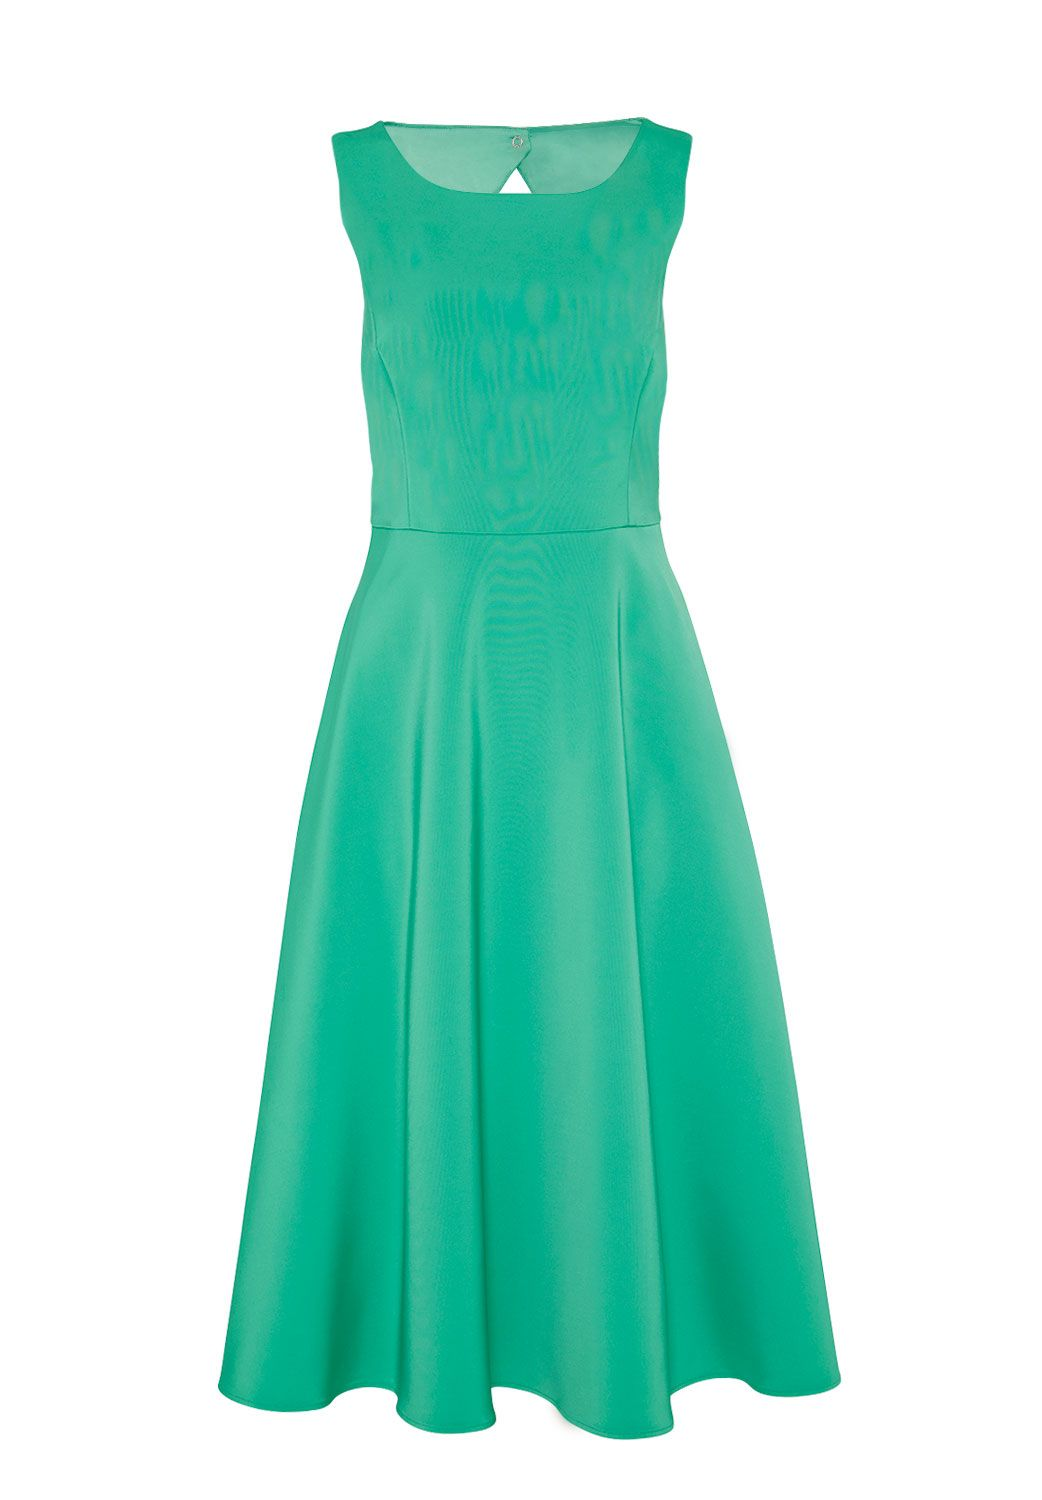 Hallhuber Midi dress with cut-out back, Green